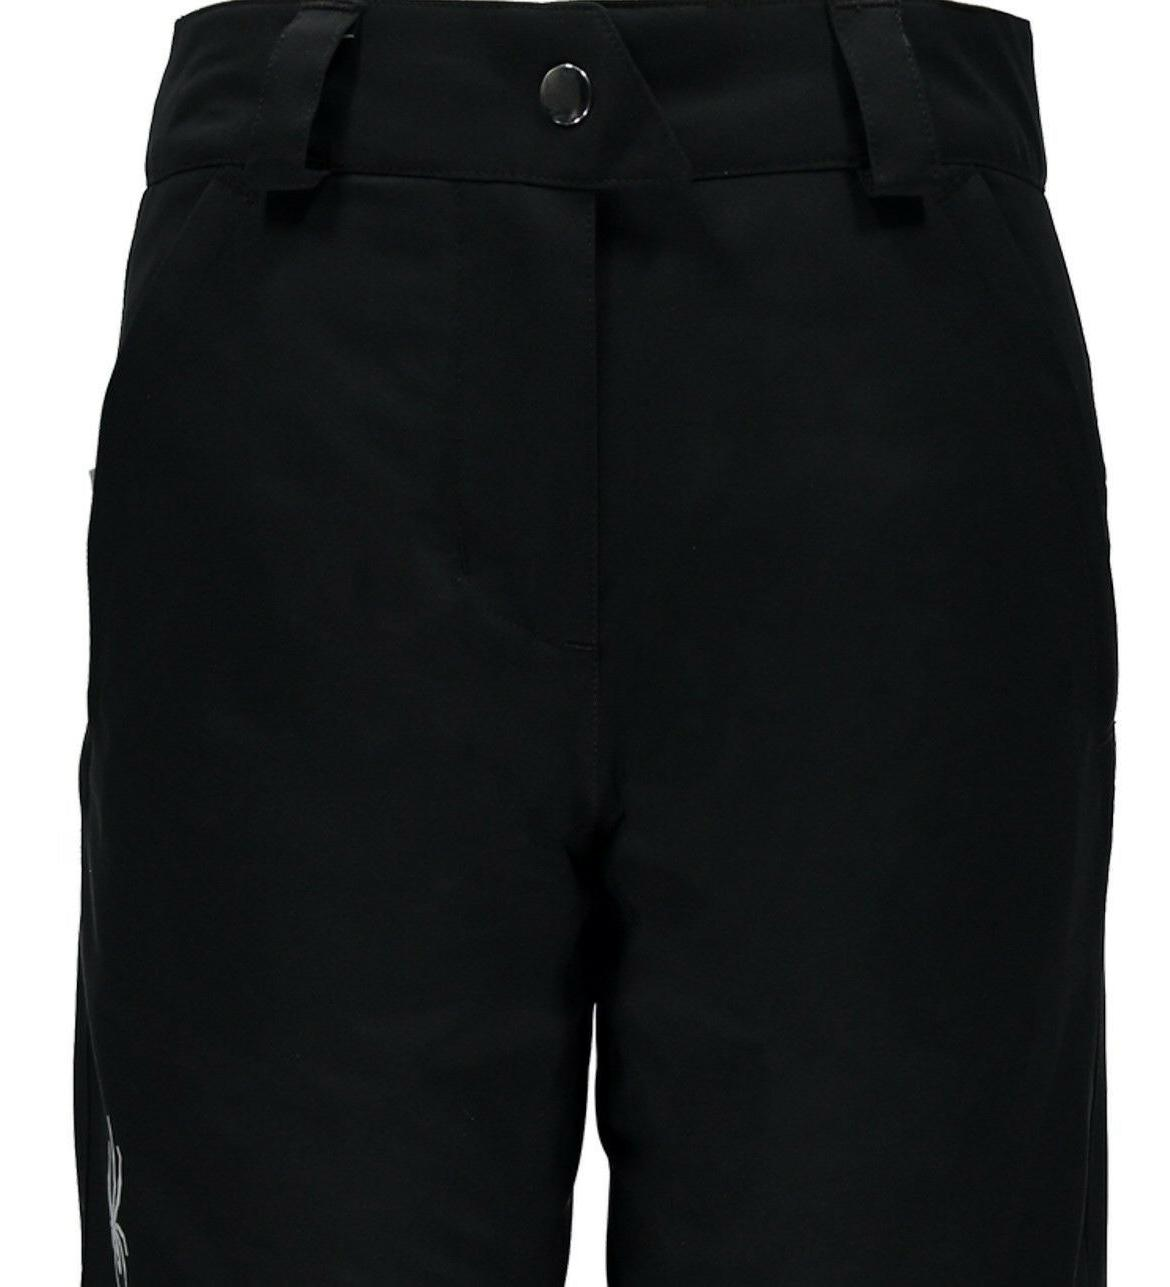 NEW Vixen Ski Pants Insulated Girl's 18